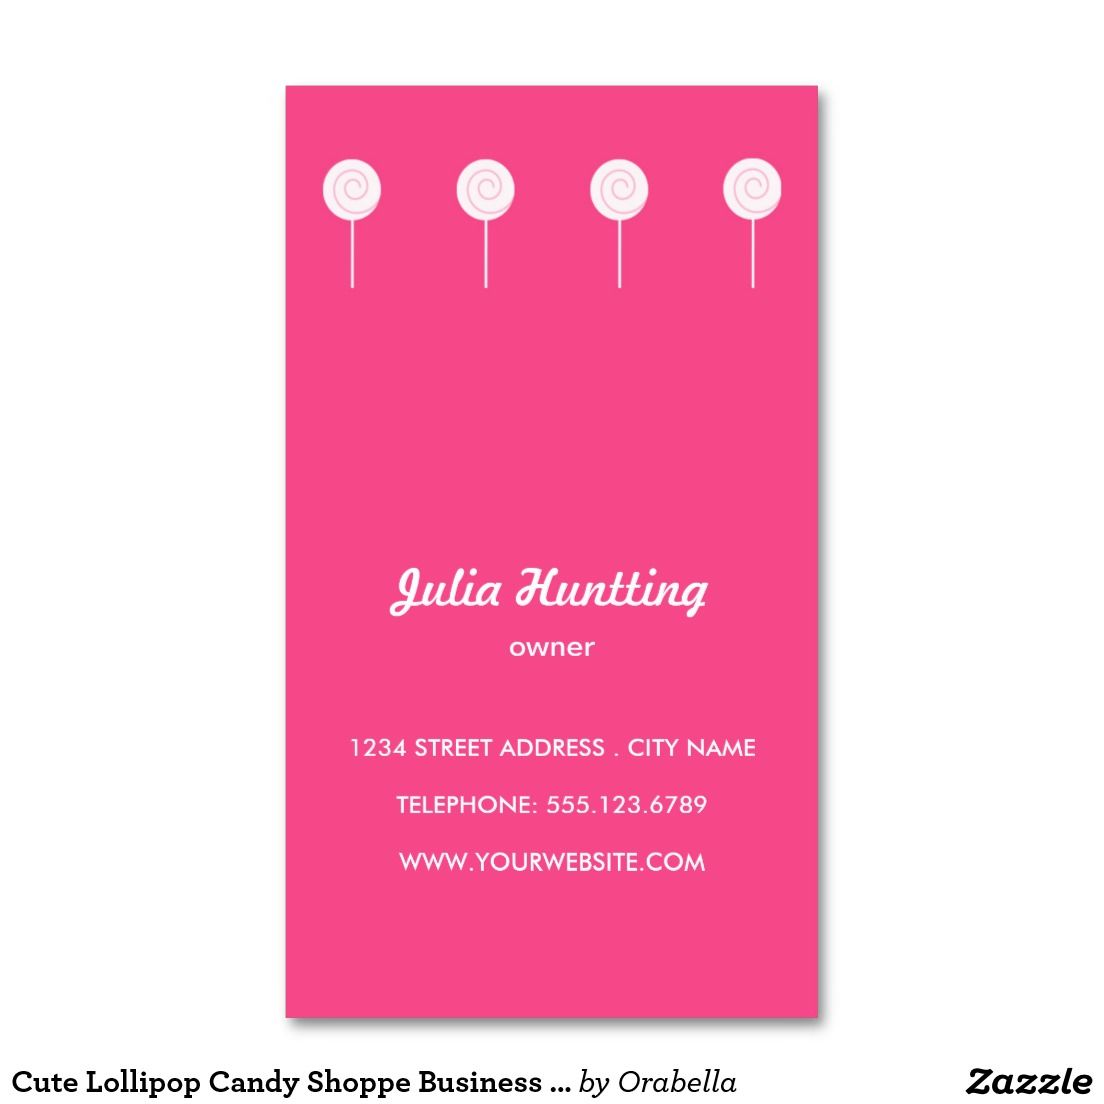 Cute Lollipop Candy Shoppe Business Cards | Art Printmaking ...